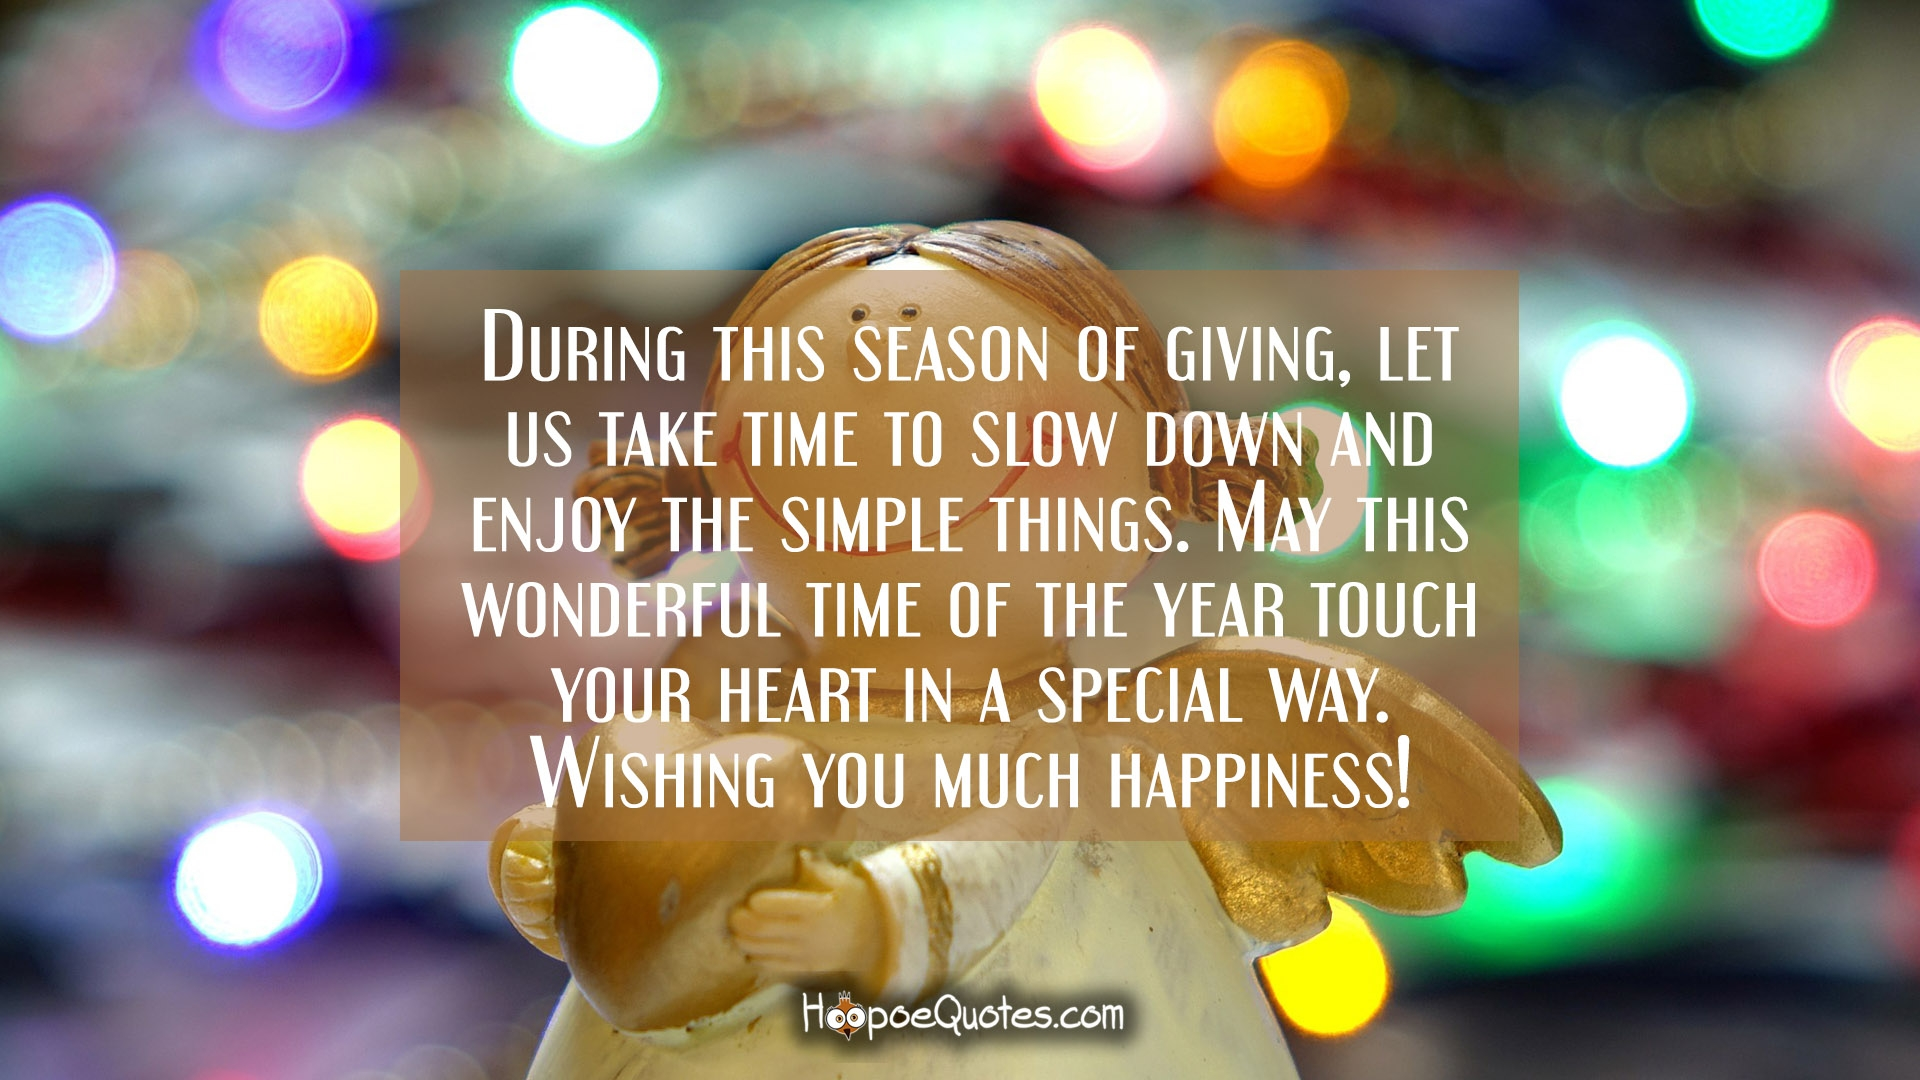 Superieur During This Season Of Giving, Let Us Take Time To Slow Down And Enjoy The